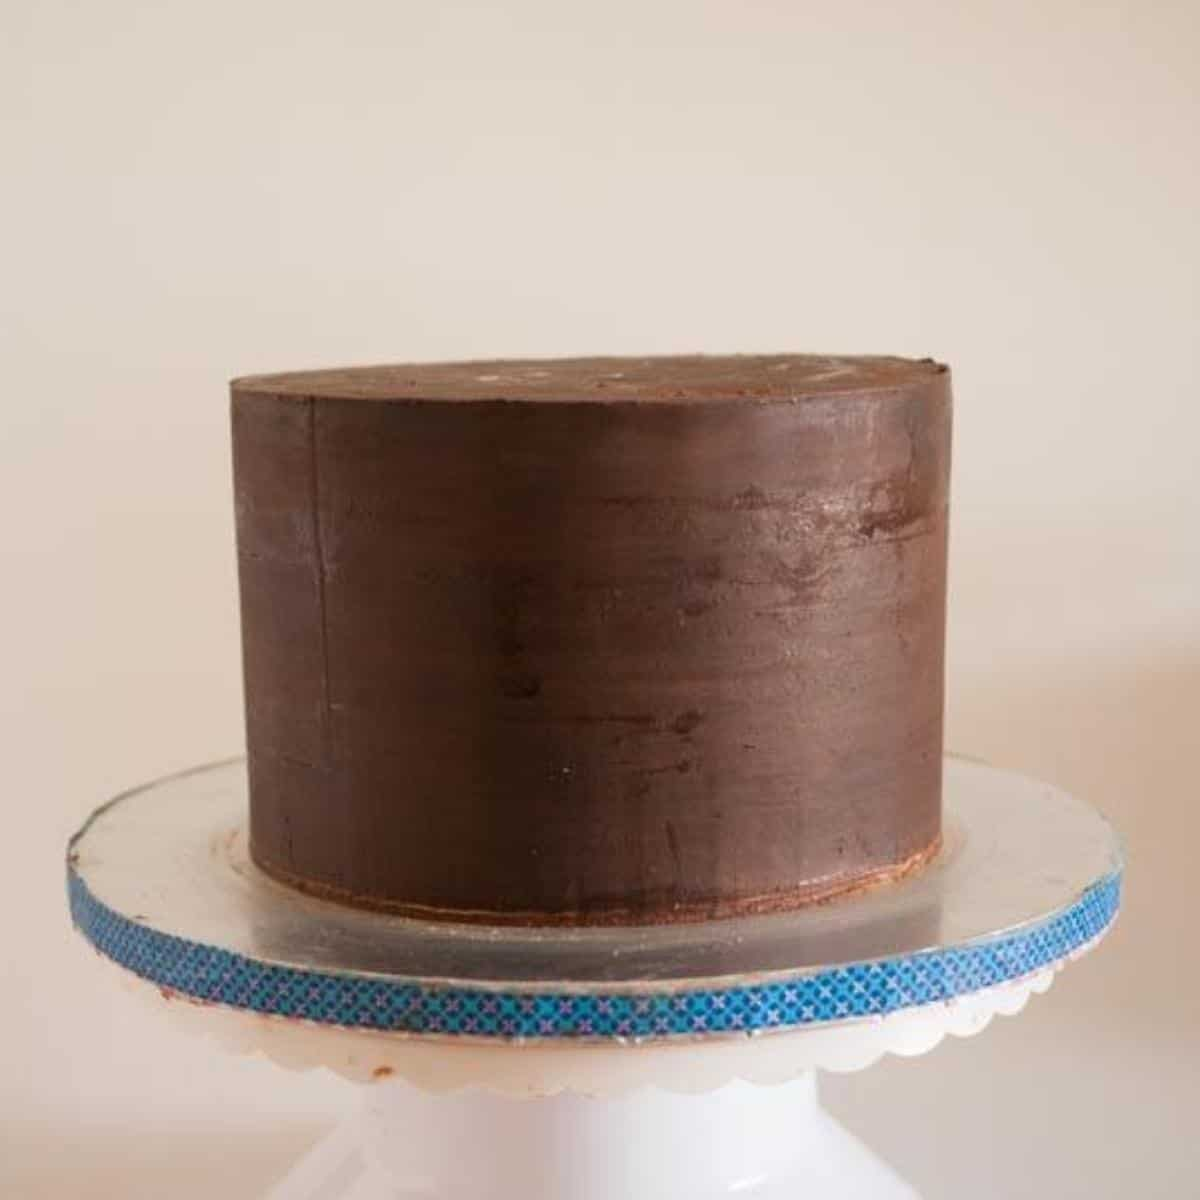 A cake with sharp edges covered in ganache.